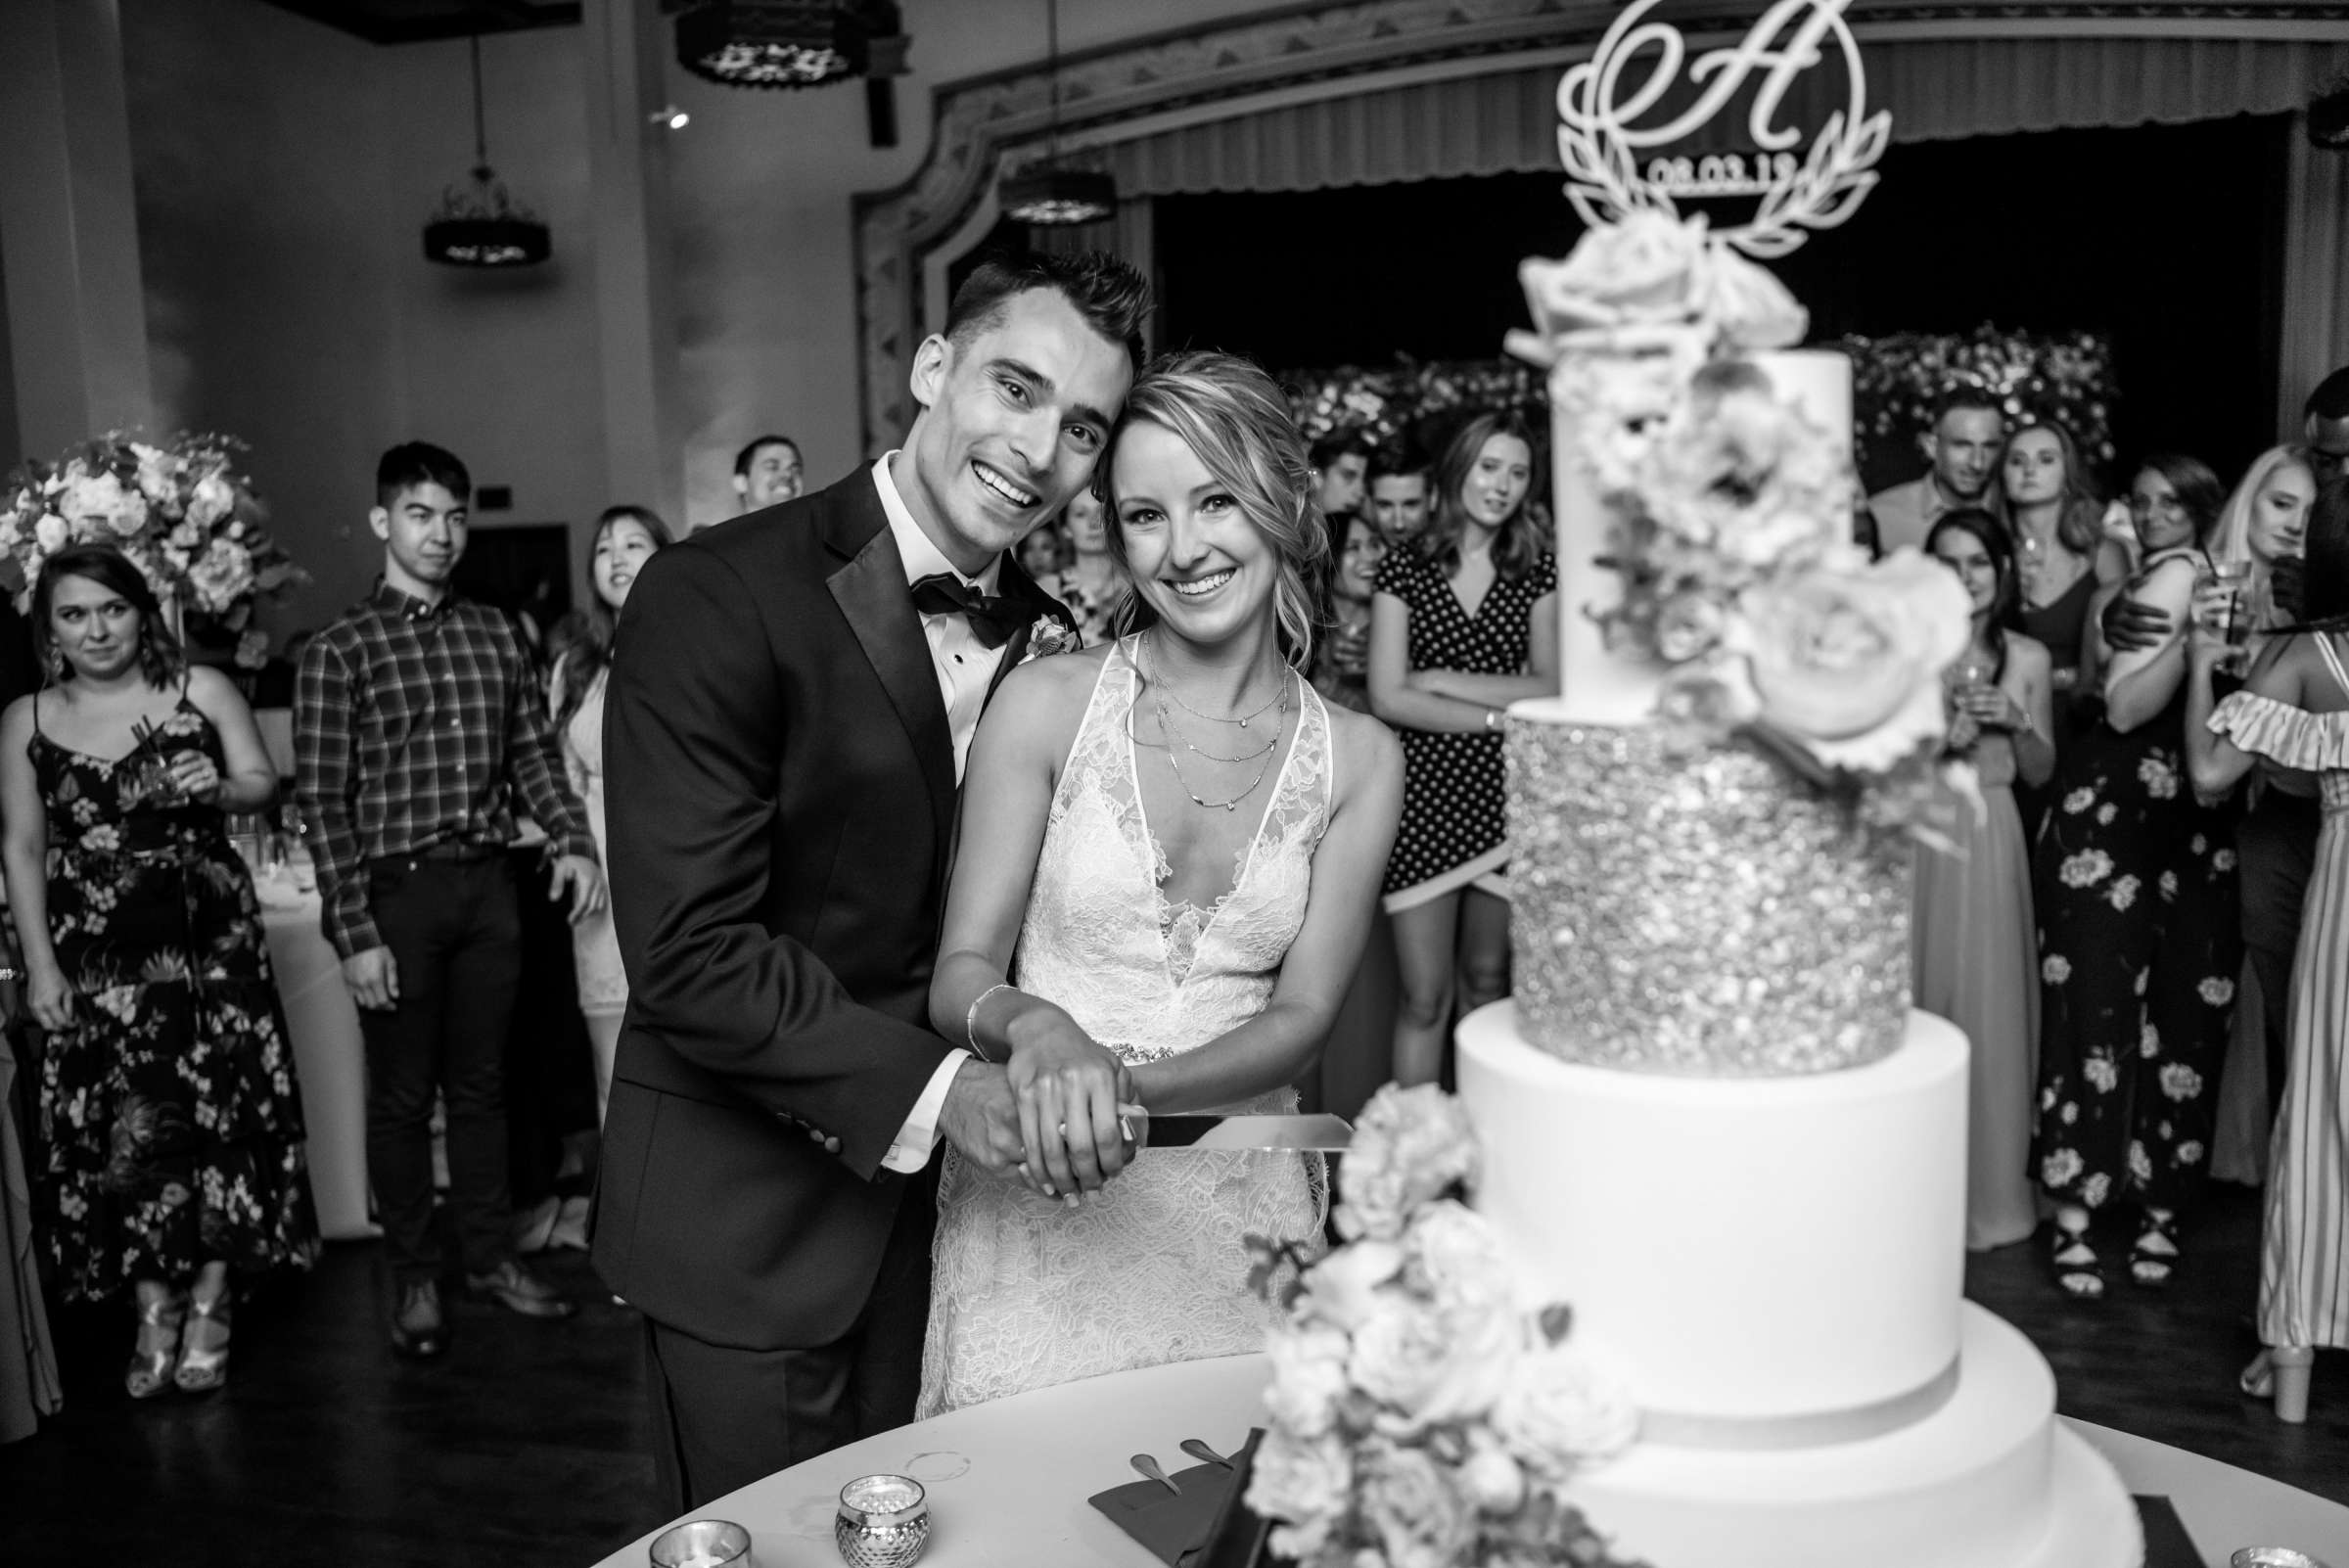 The Prado Wedding coordinated by Bliss Events, Sara and Marvin Wedding Photo #559646 by True Photography